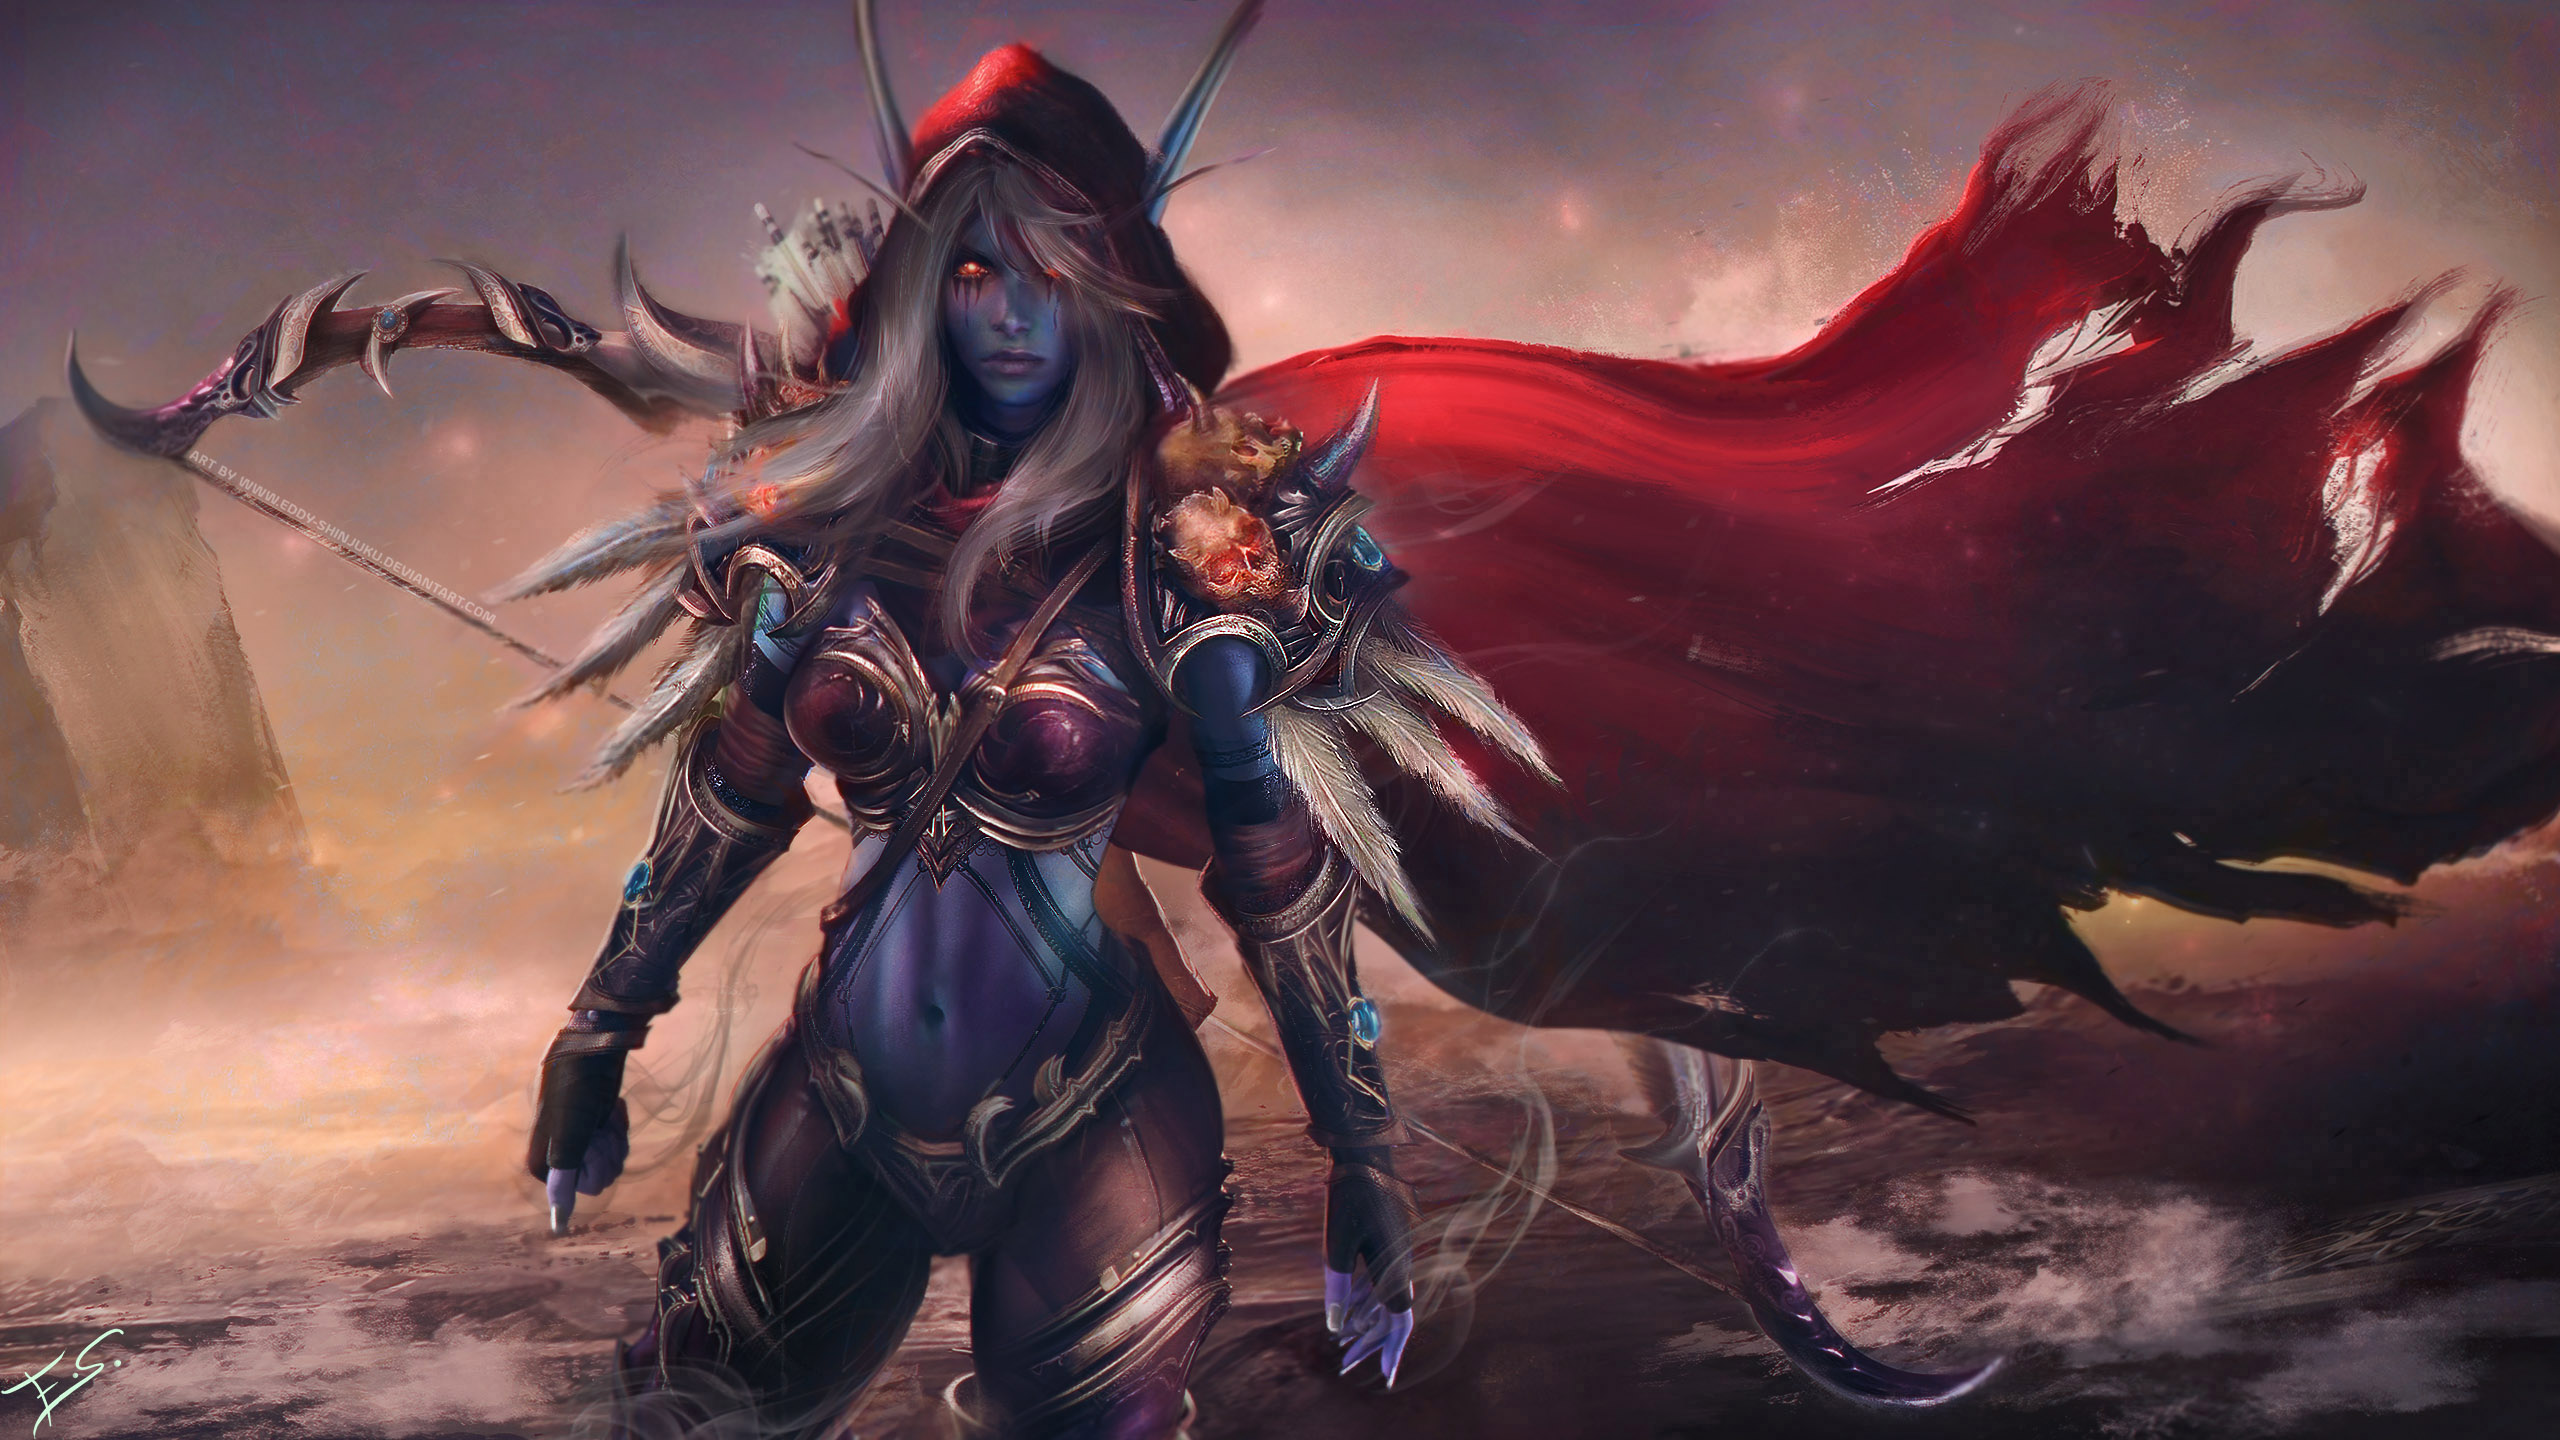 Sylvanas Windrunner Warcraft Wallpaper Art By Eddy Shinjuku On Deviantart